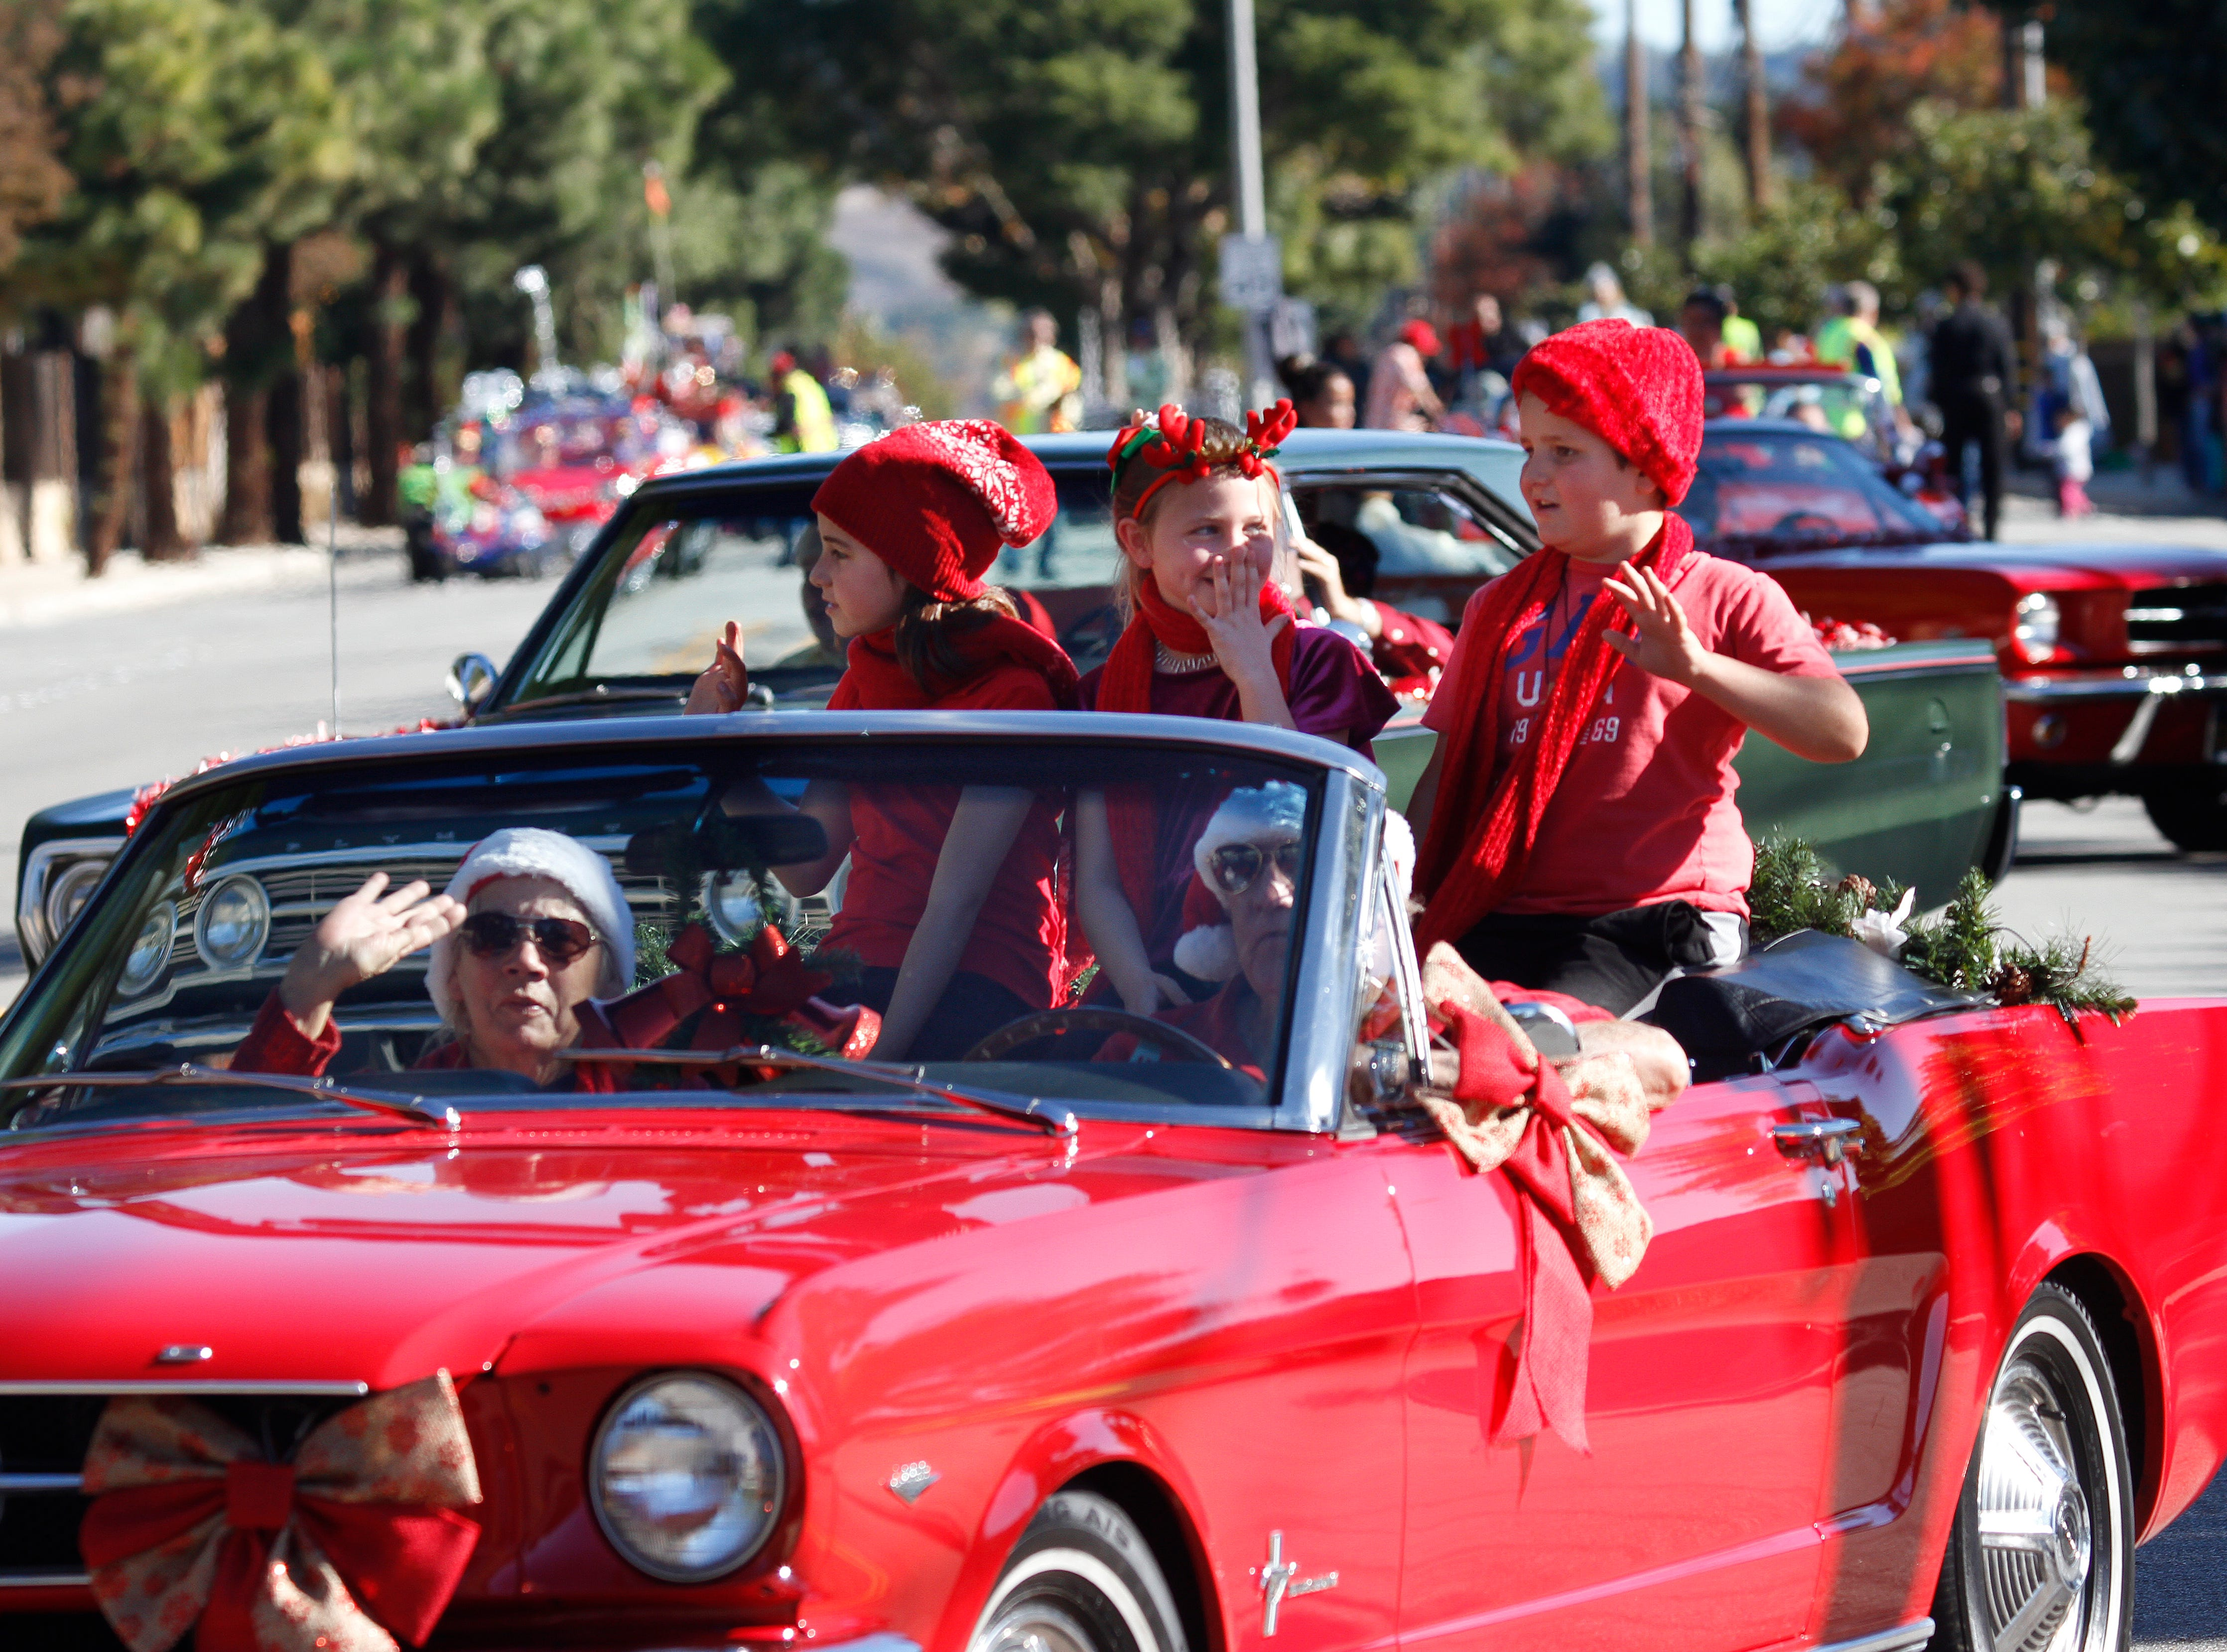 From left in back, Samantha Lambert, Taylor Hone and Jack Lambert wave to the crowd during Saturday's Christmas parade in Camarillo.